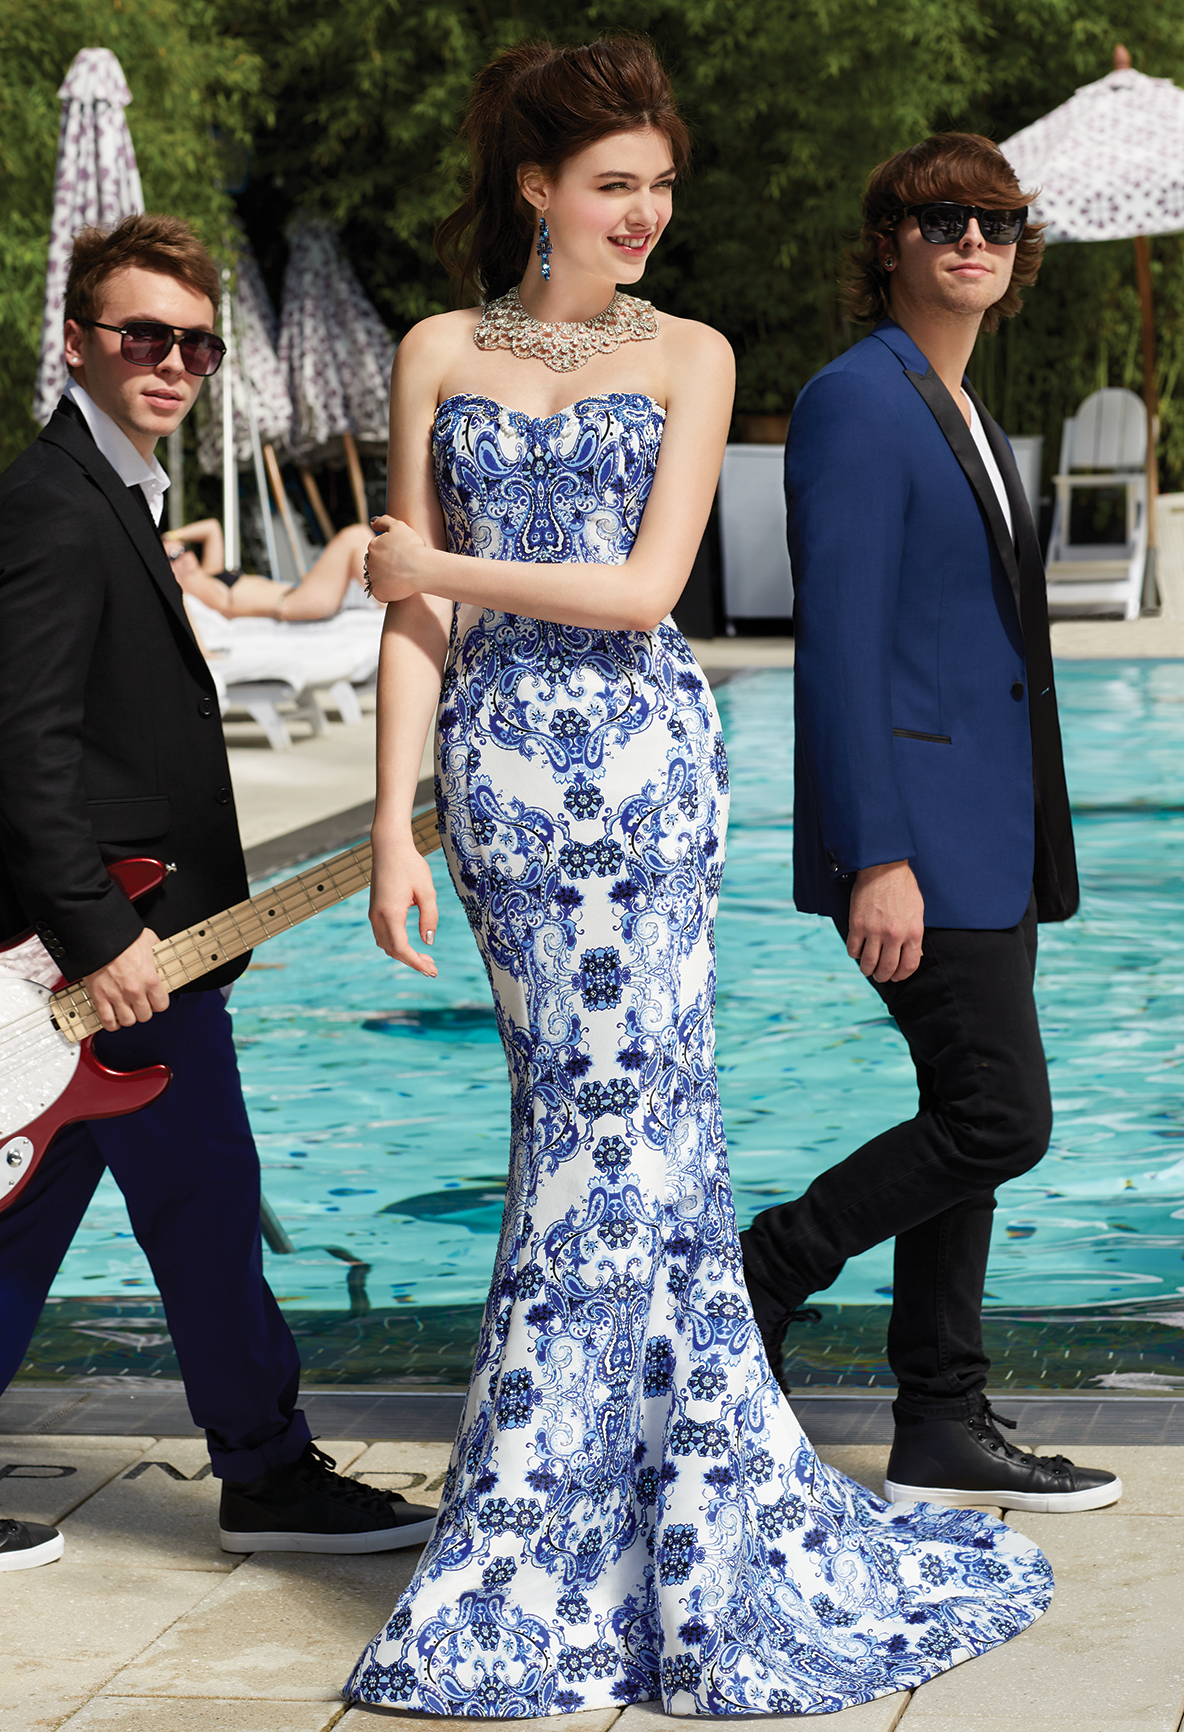 Sweet floral styles are stealing the scene this prom season! Shop ...